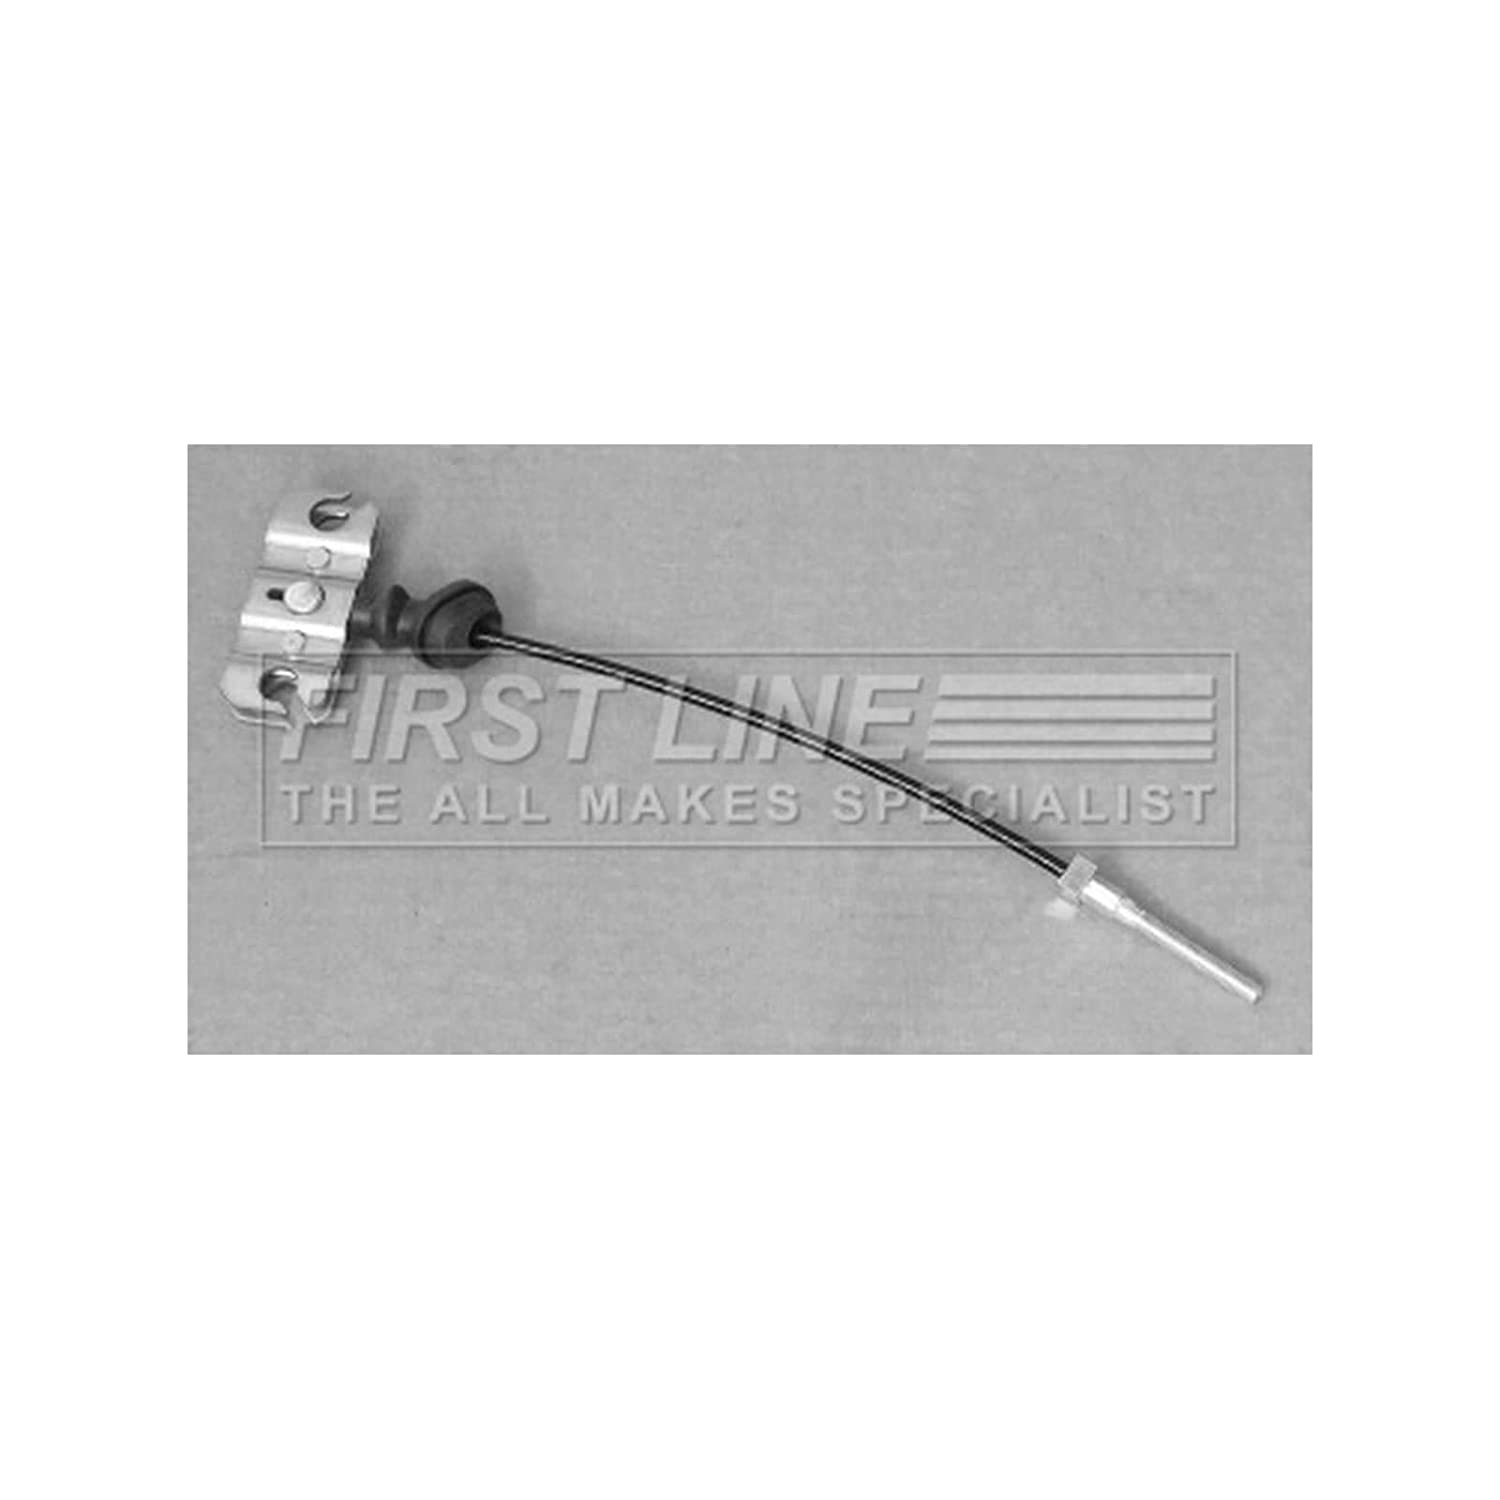 First Line FKB3136 Parking Brake Cable AutoMotion Factors Limited